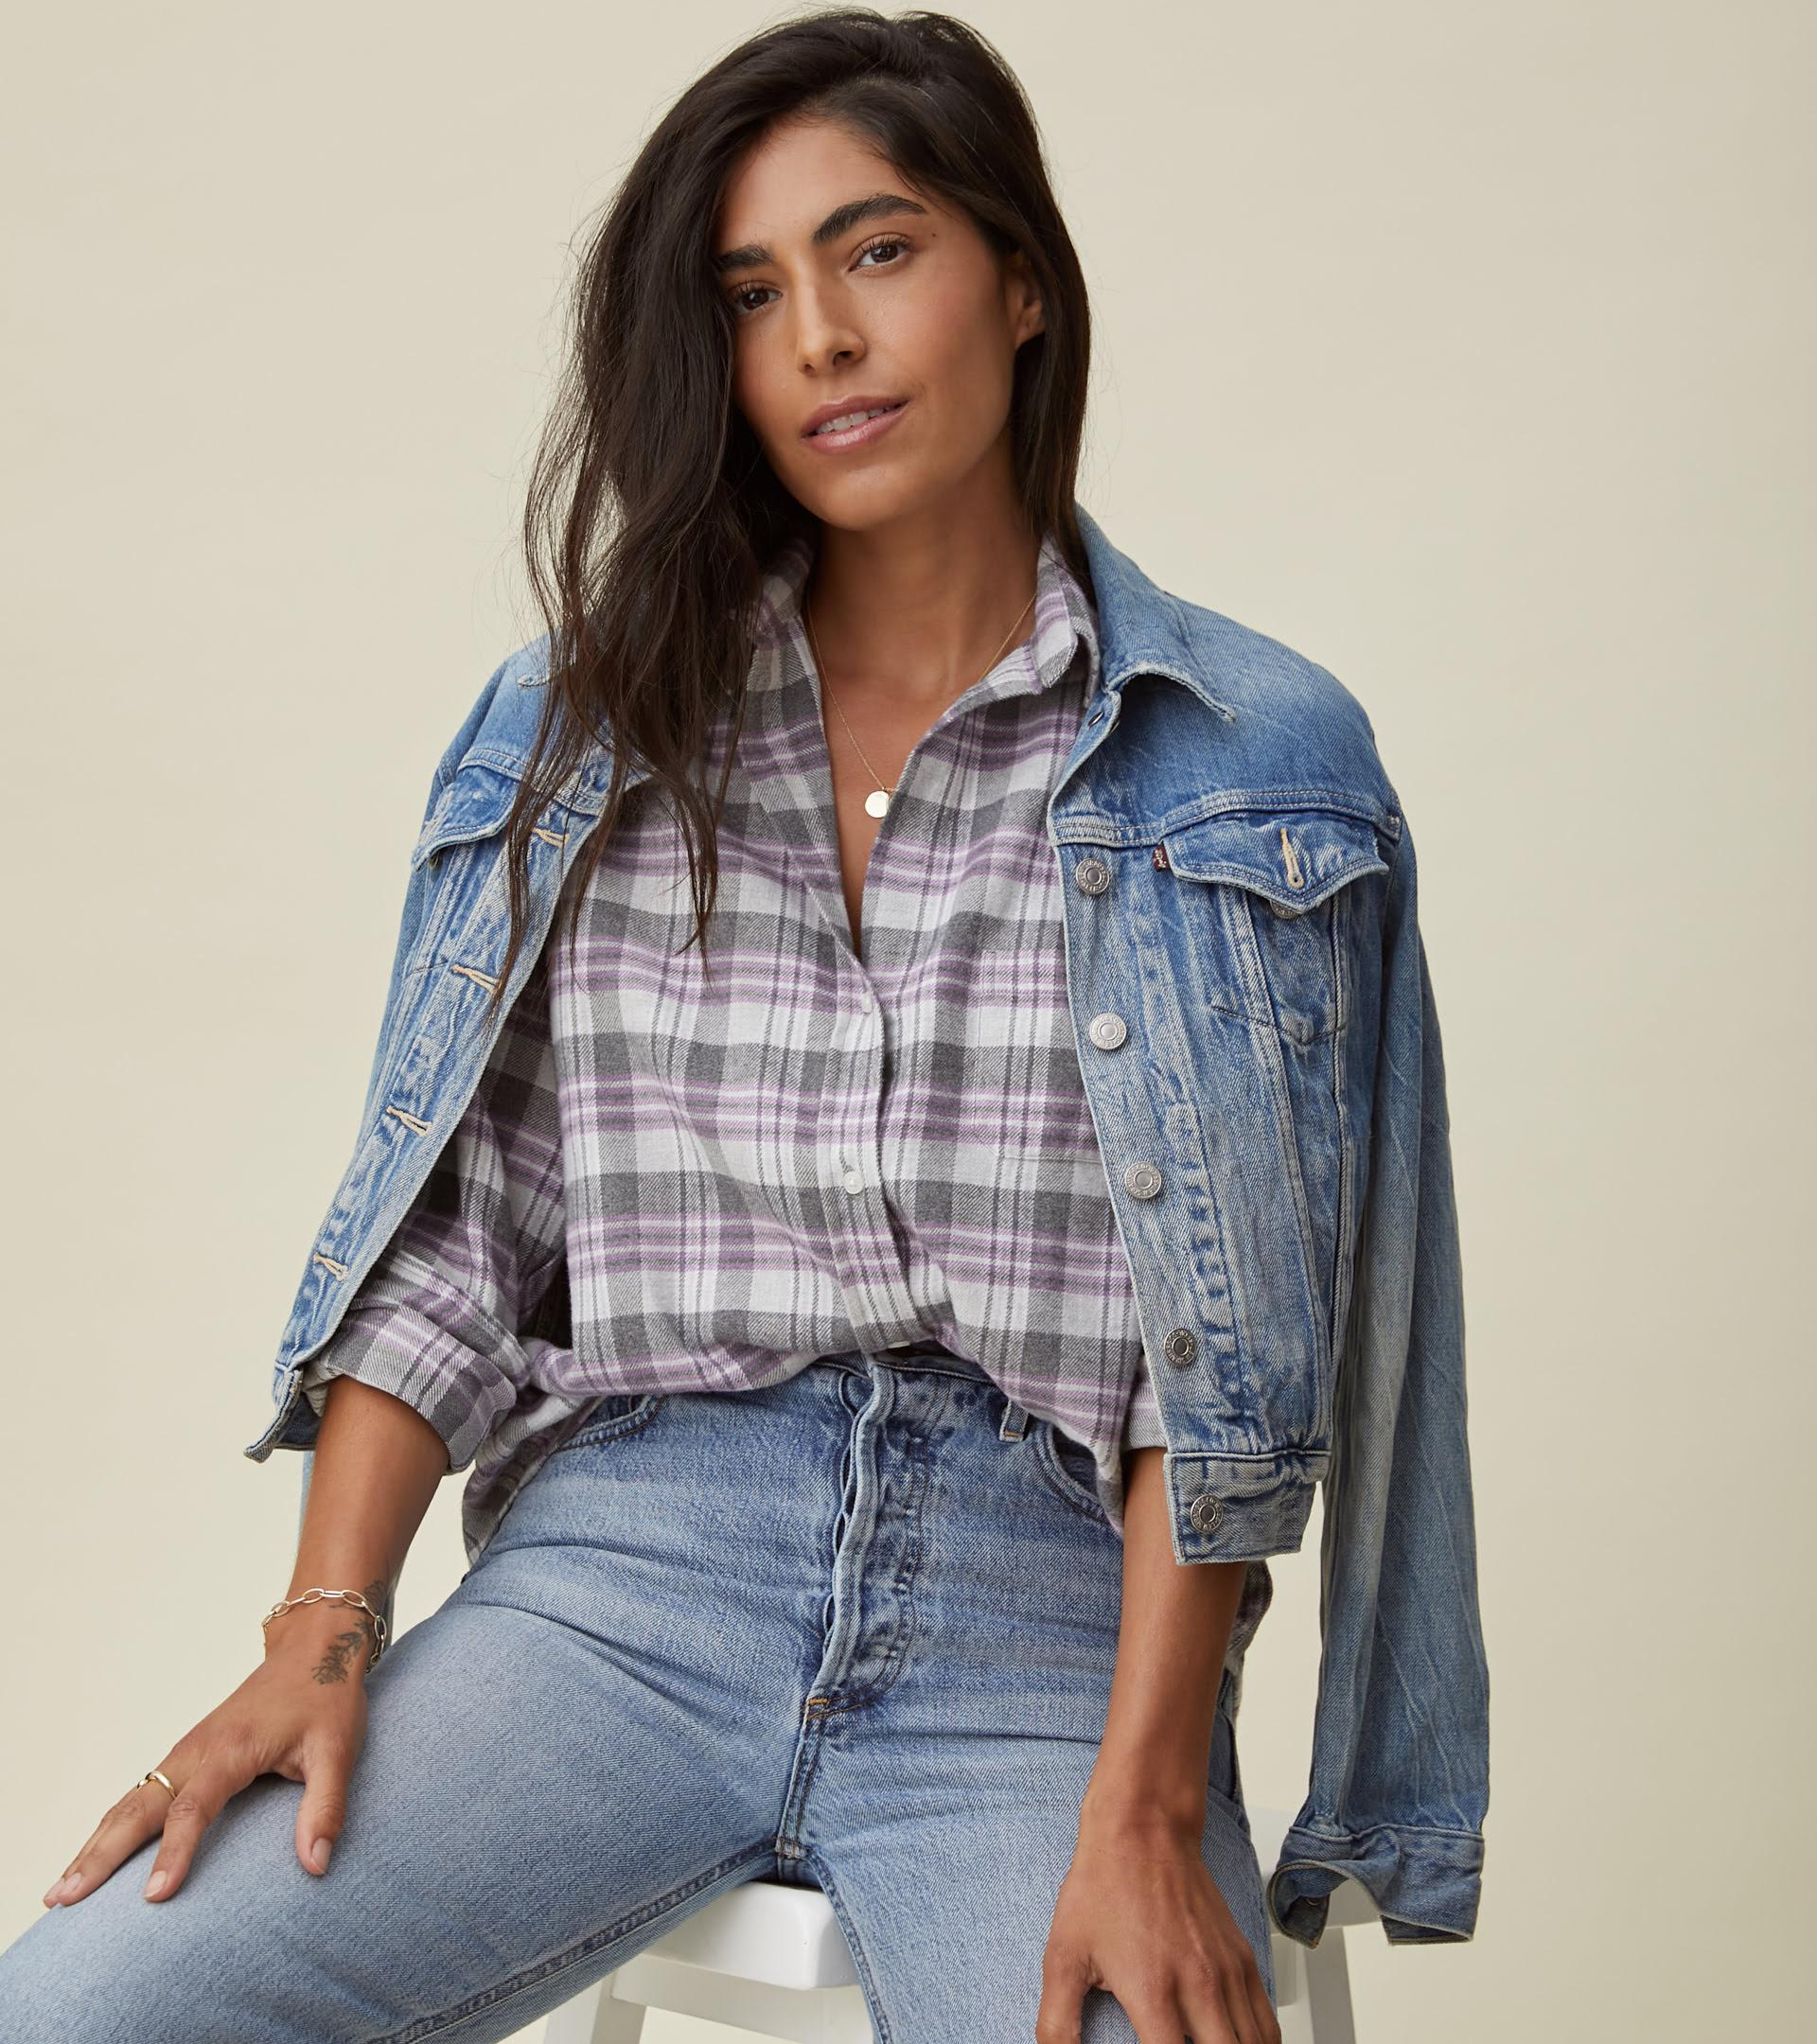 The Hero Button-Up Shirt Gray, White, and Purple Plaid, Plush Flannel